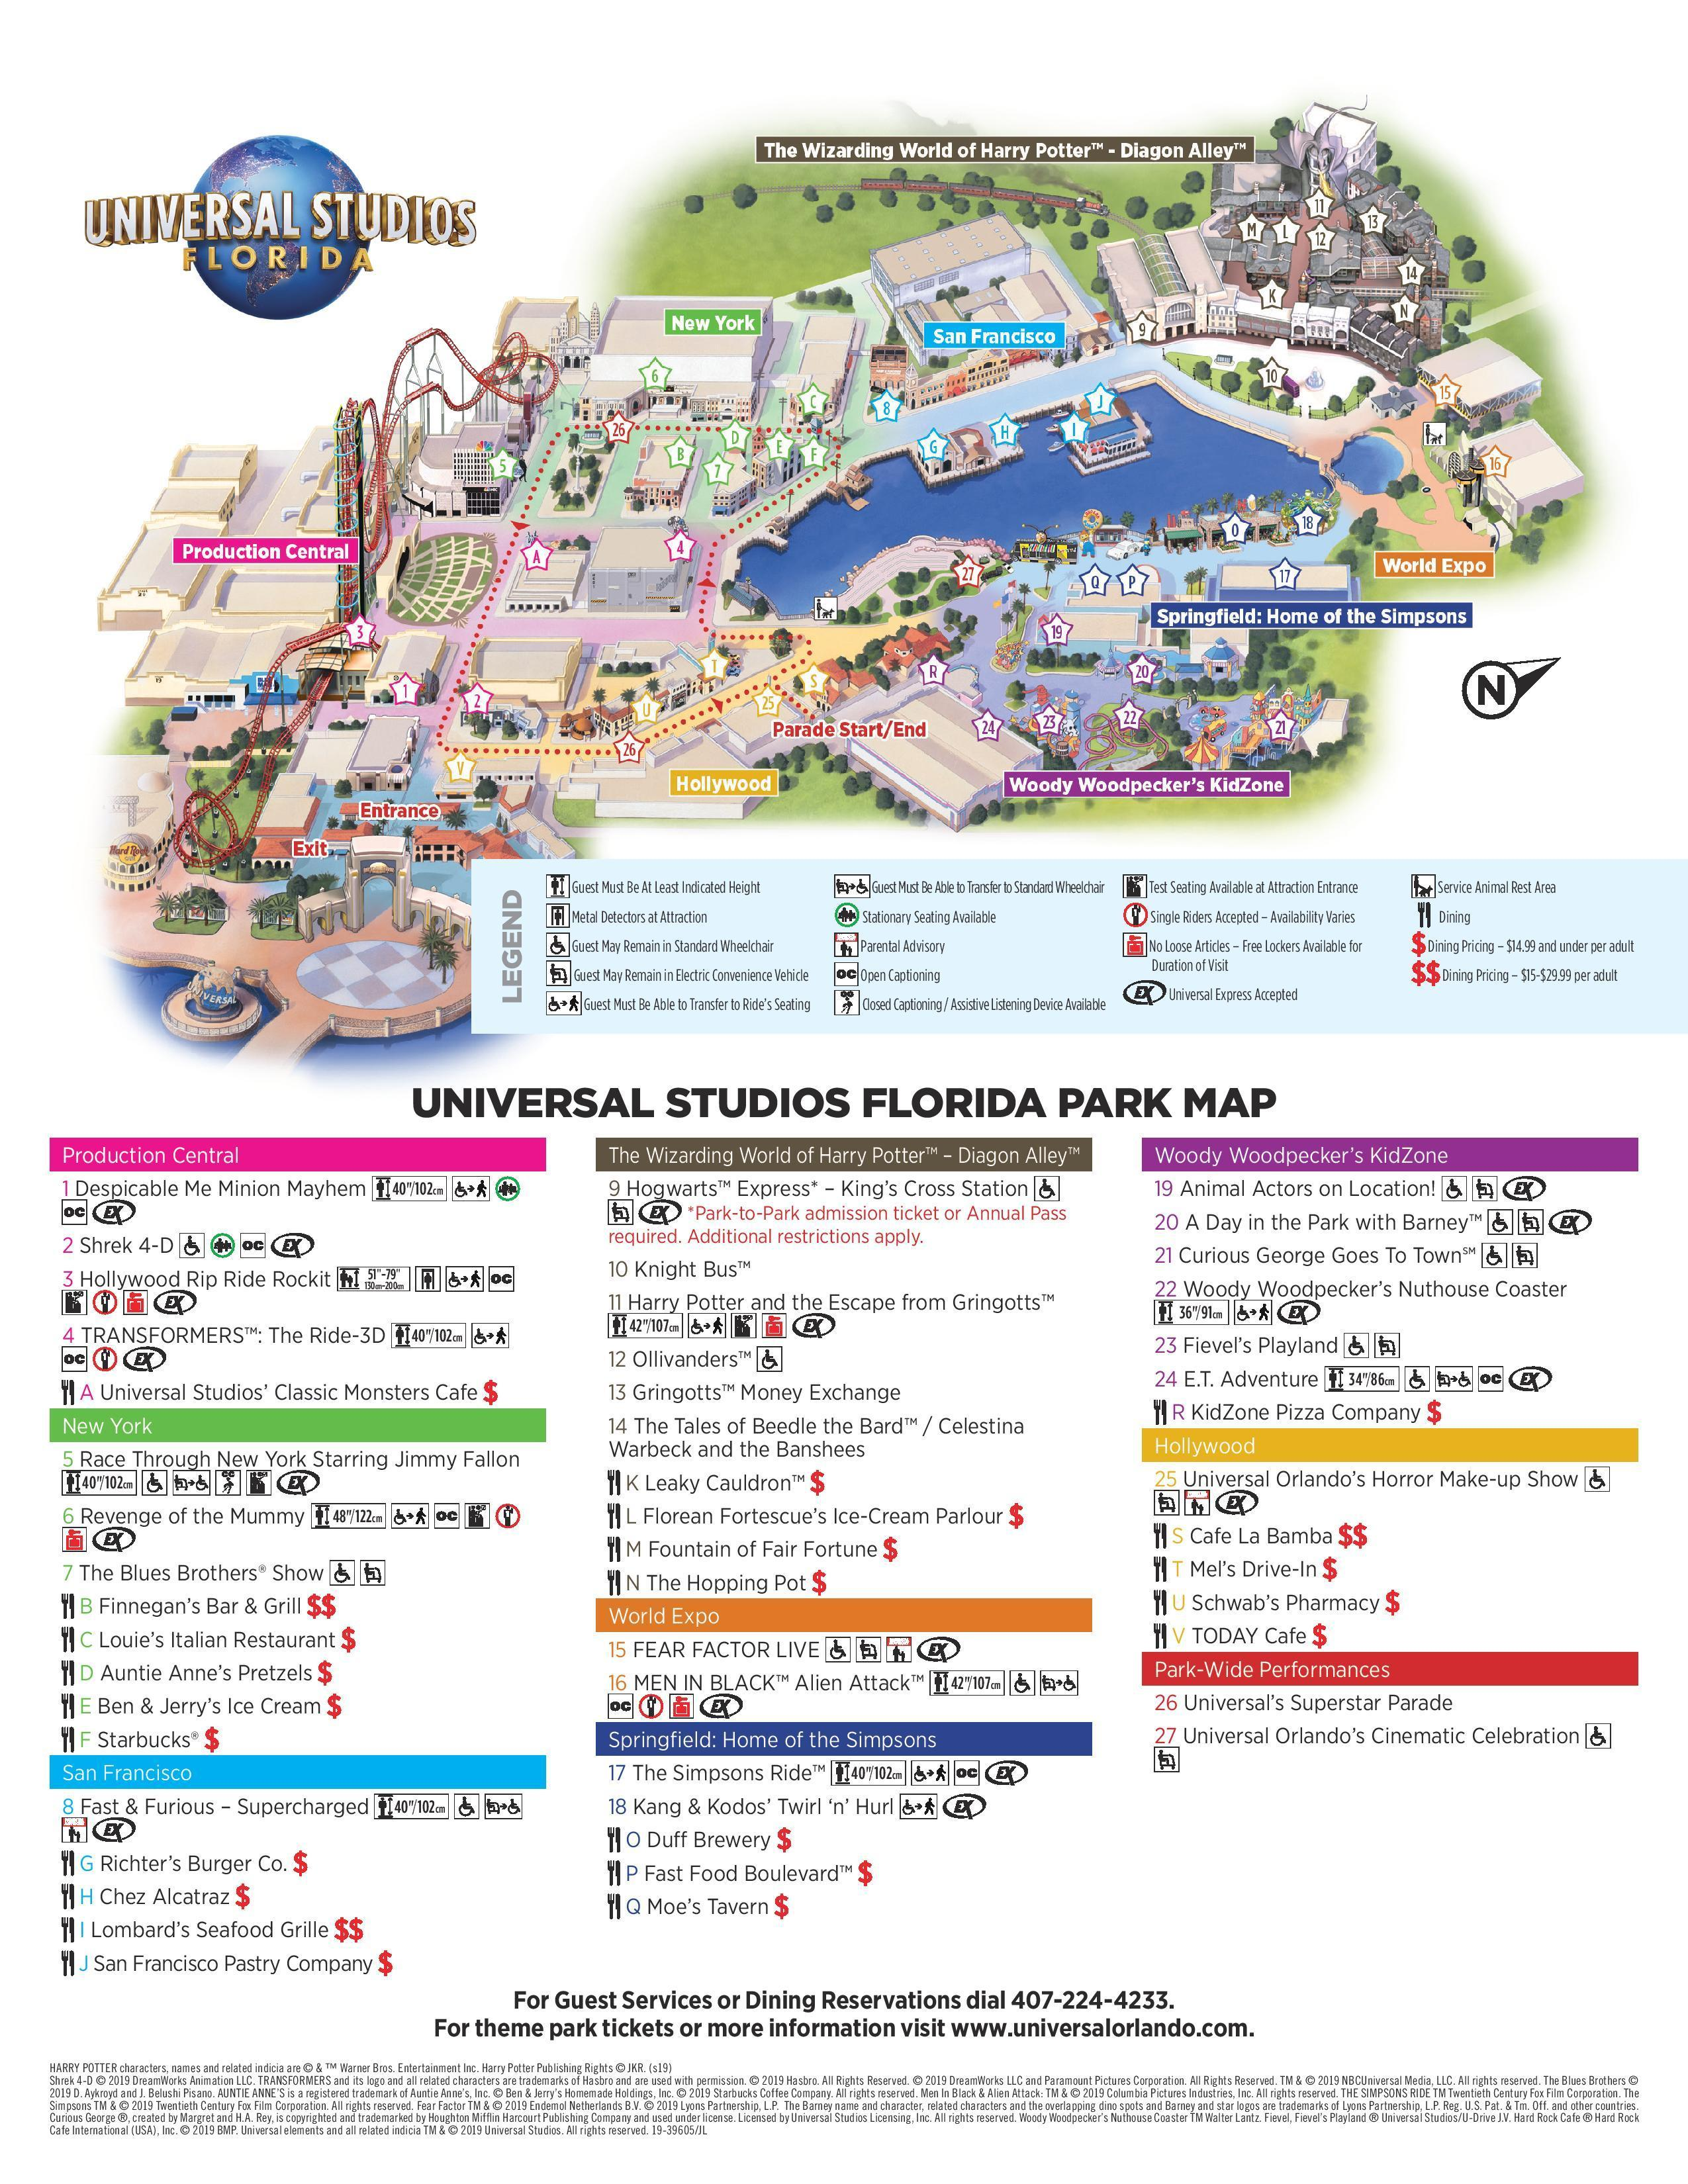 Universal Studios Florida Park Map 2019 for Android - APK ...